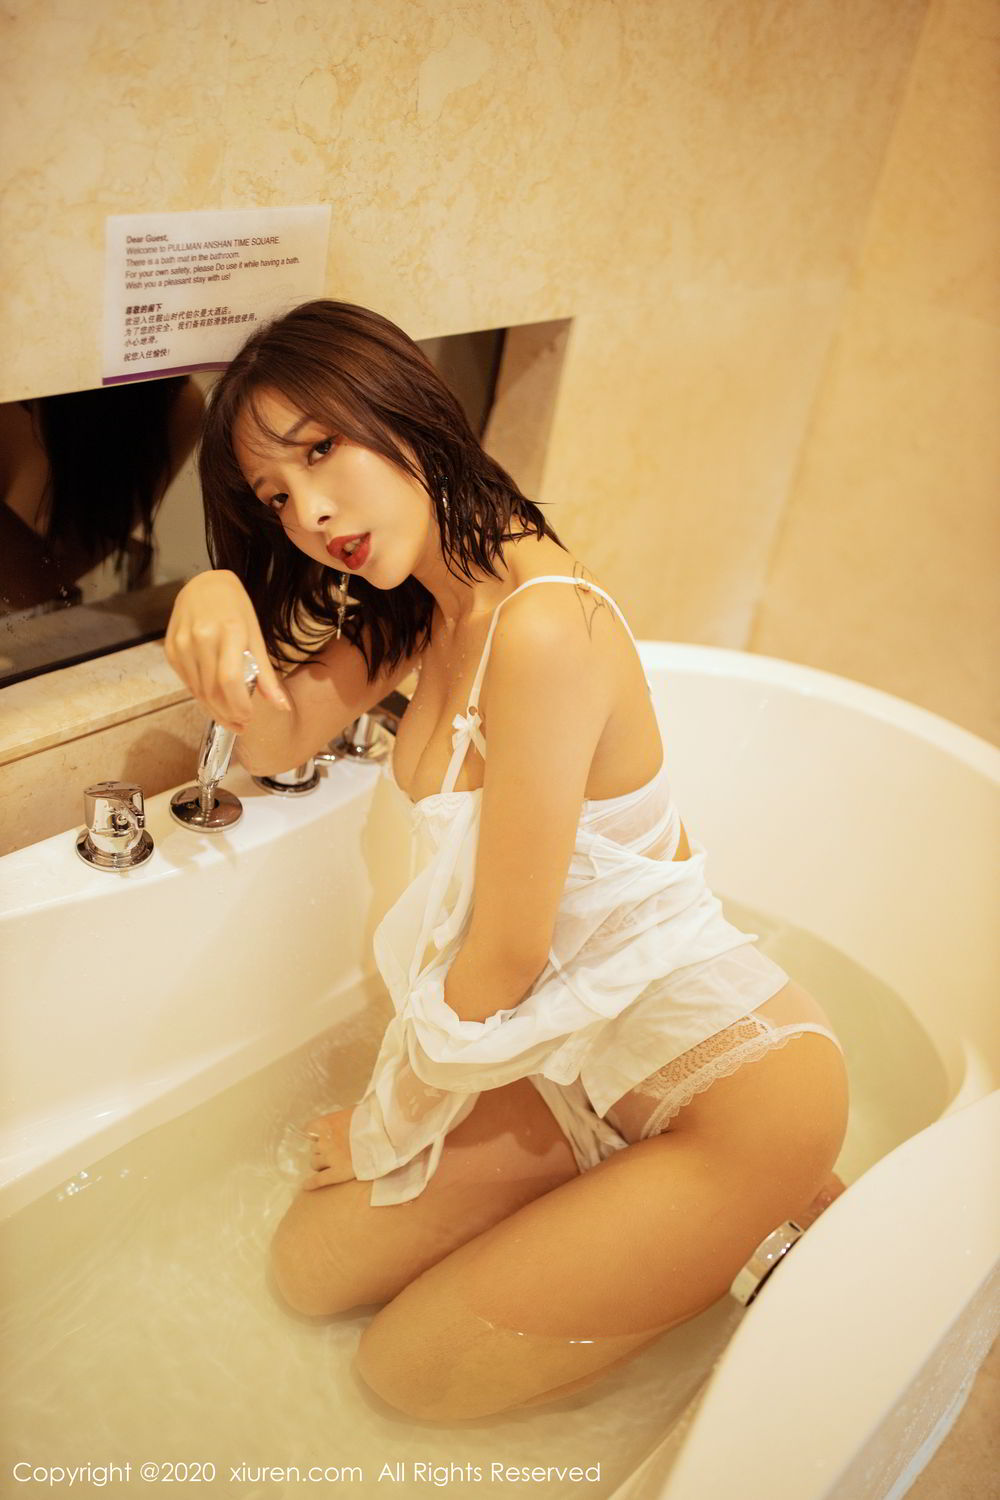 [XiuRen] Vol.2158 Chen Xiao Miao 44P, Bathroom, Chen Xiao Miao, Tall, Wet, Xiuren